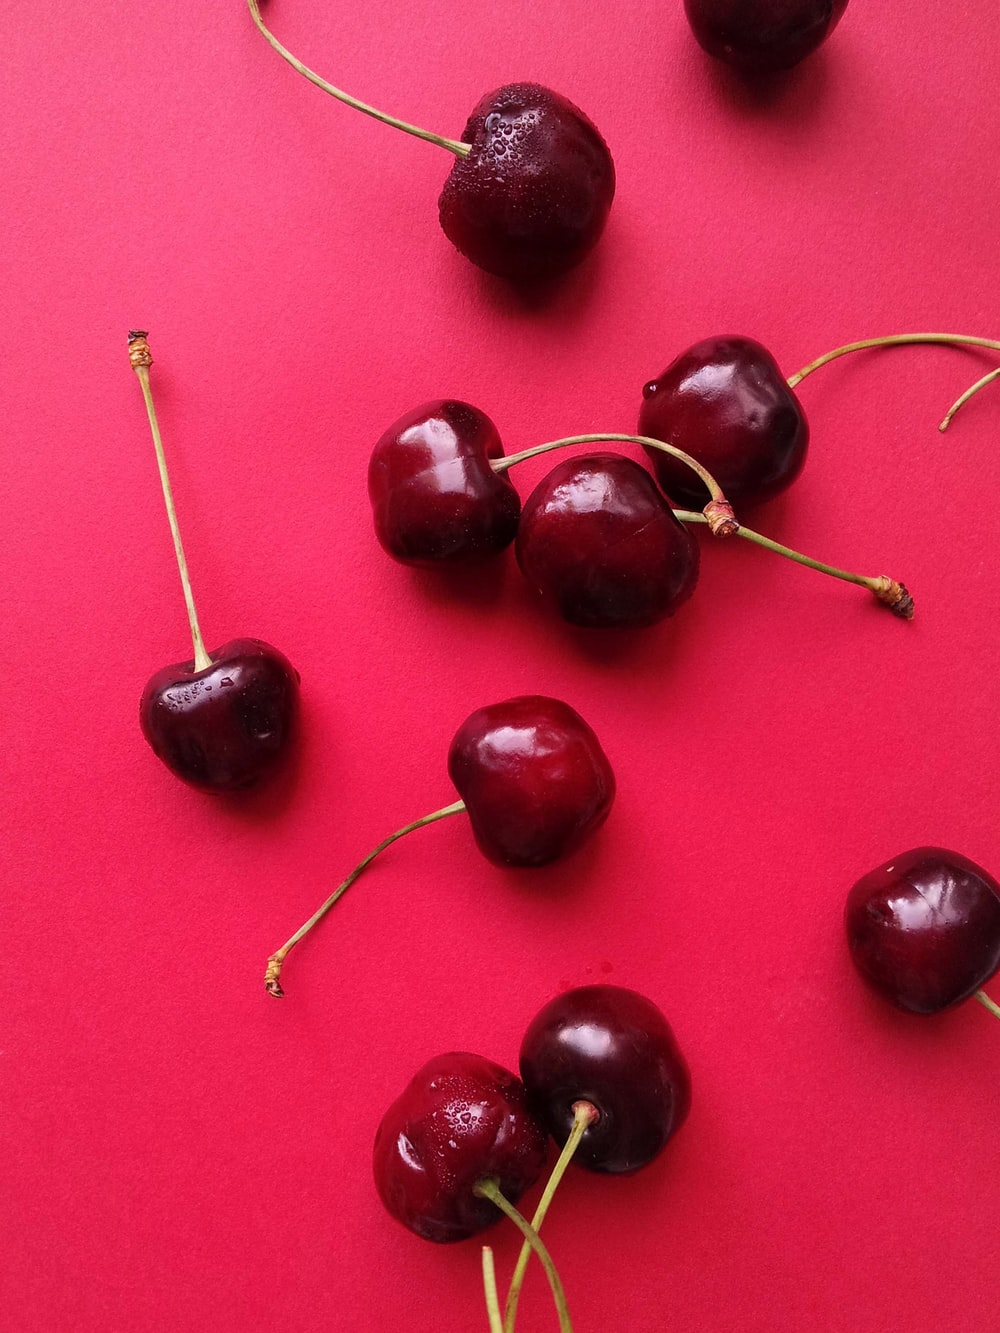 red cherries on red textile